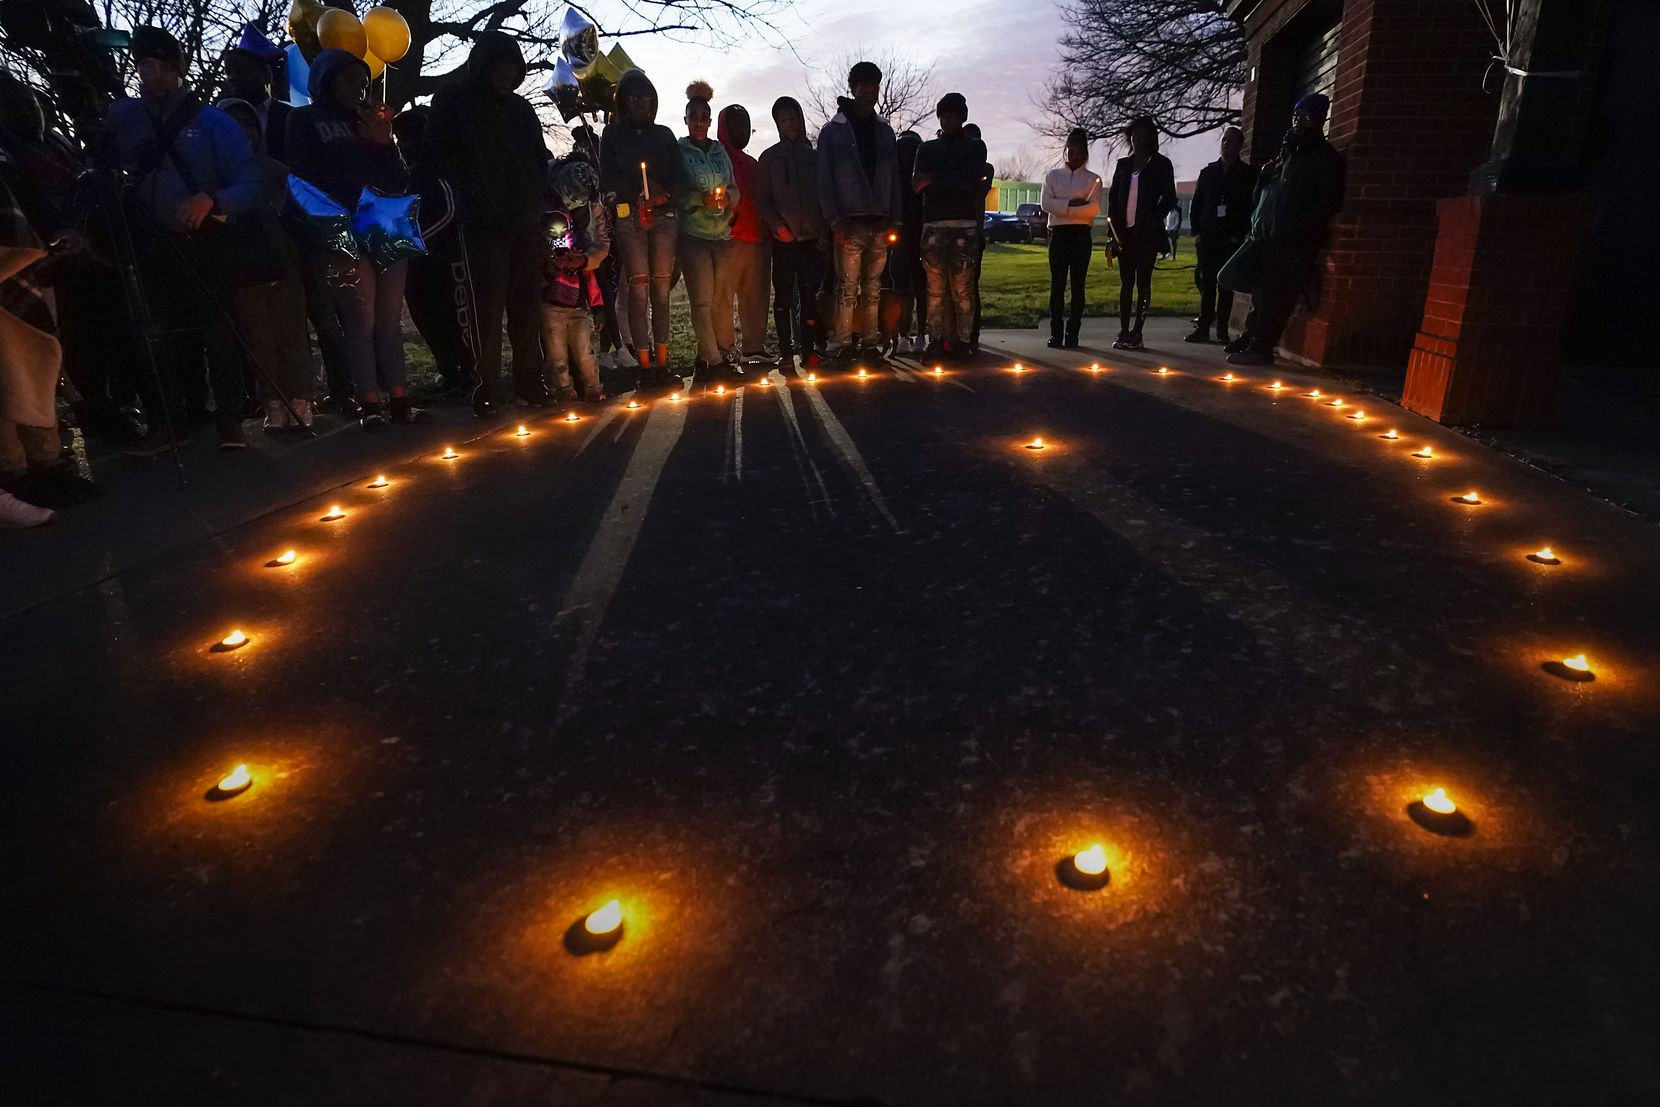 """Mourners gather for a vigil for Marc """"Flea"""" Strickland, the 18-year-old victim of a shooting at Dallas ISD basketball game, as the sun sets at Bushman Park on Sunday, Jan. 19, 2020, in Dallas."""